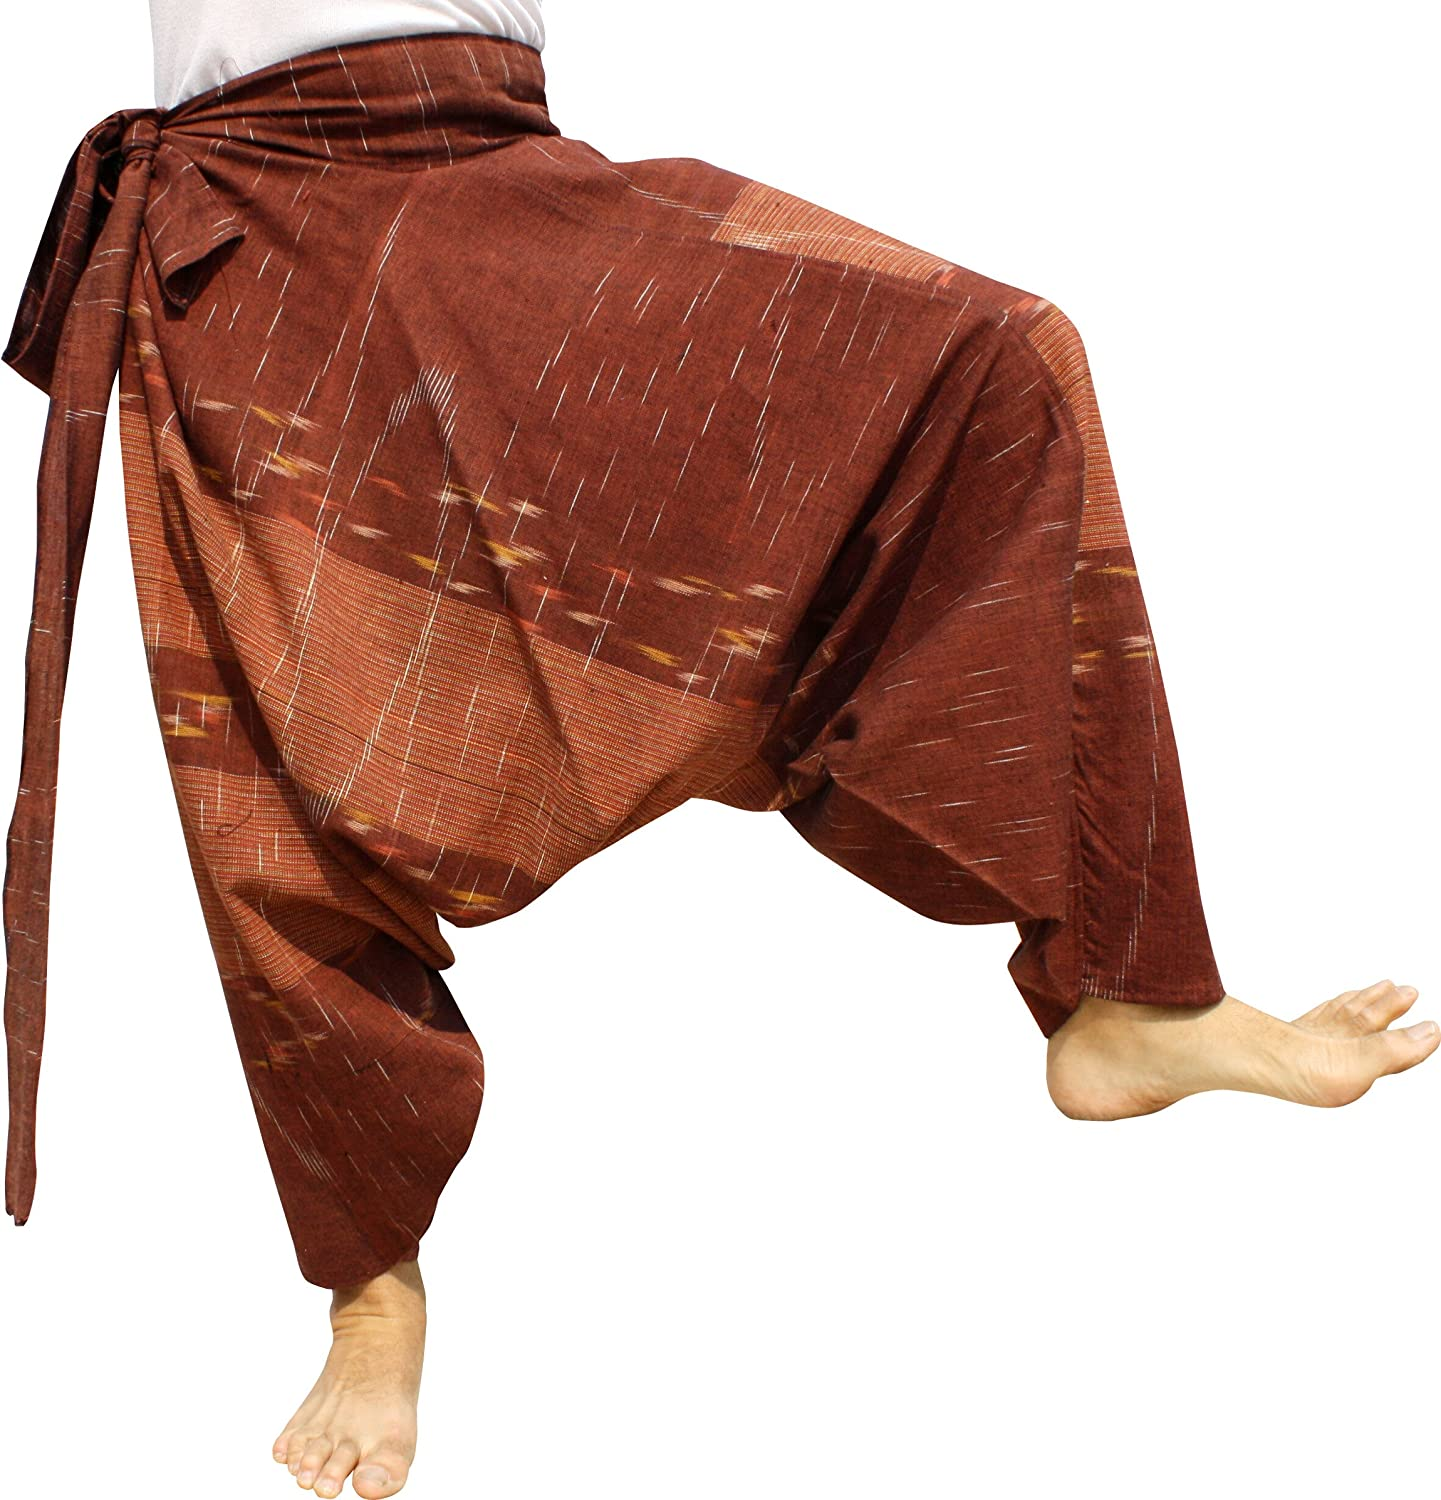 Chomtong Cotton  Bole Brown Raan Pah Muang Mixed Cotton Mao Hill Tribe Pants Side Tie